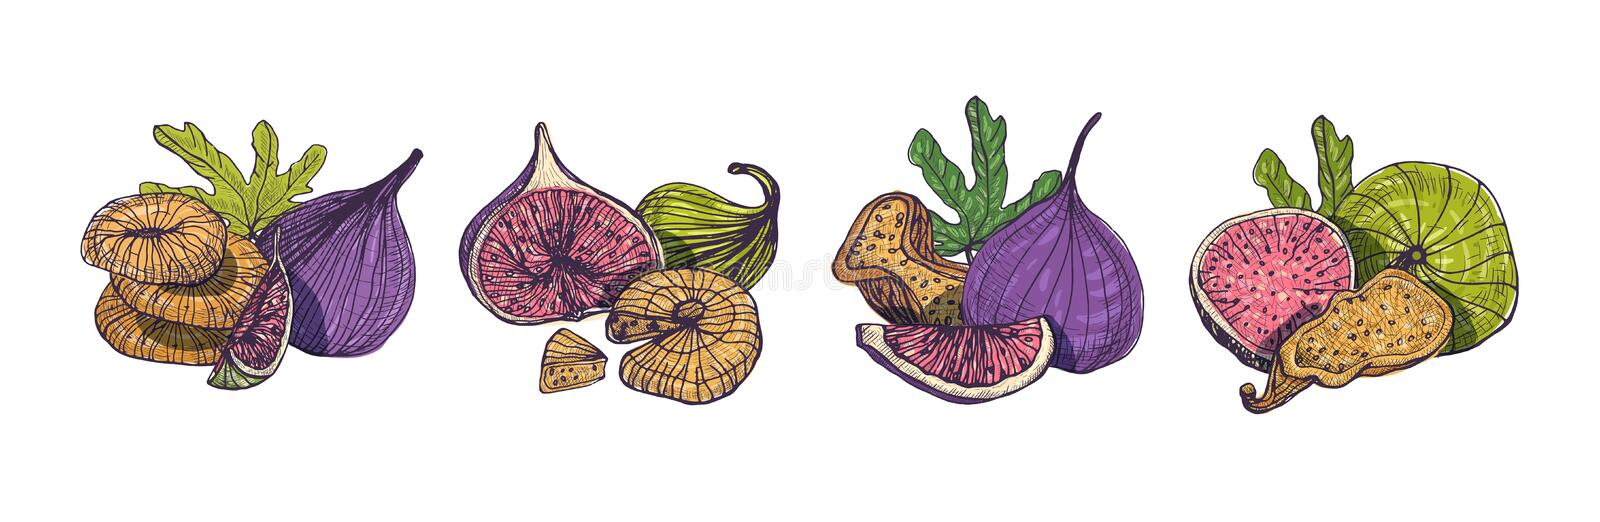 Collection of elegant detailed natural drawings of fig isolated on white background. Bundle of whole and cut exotic. Dried fruits hand drawn in beautiful vector illustration